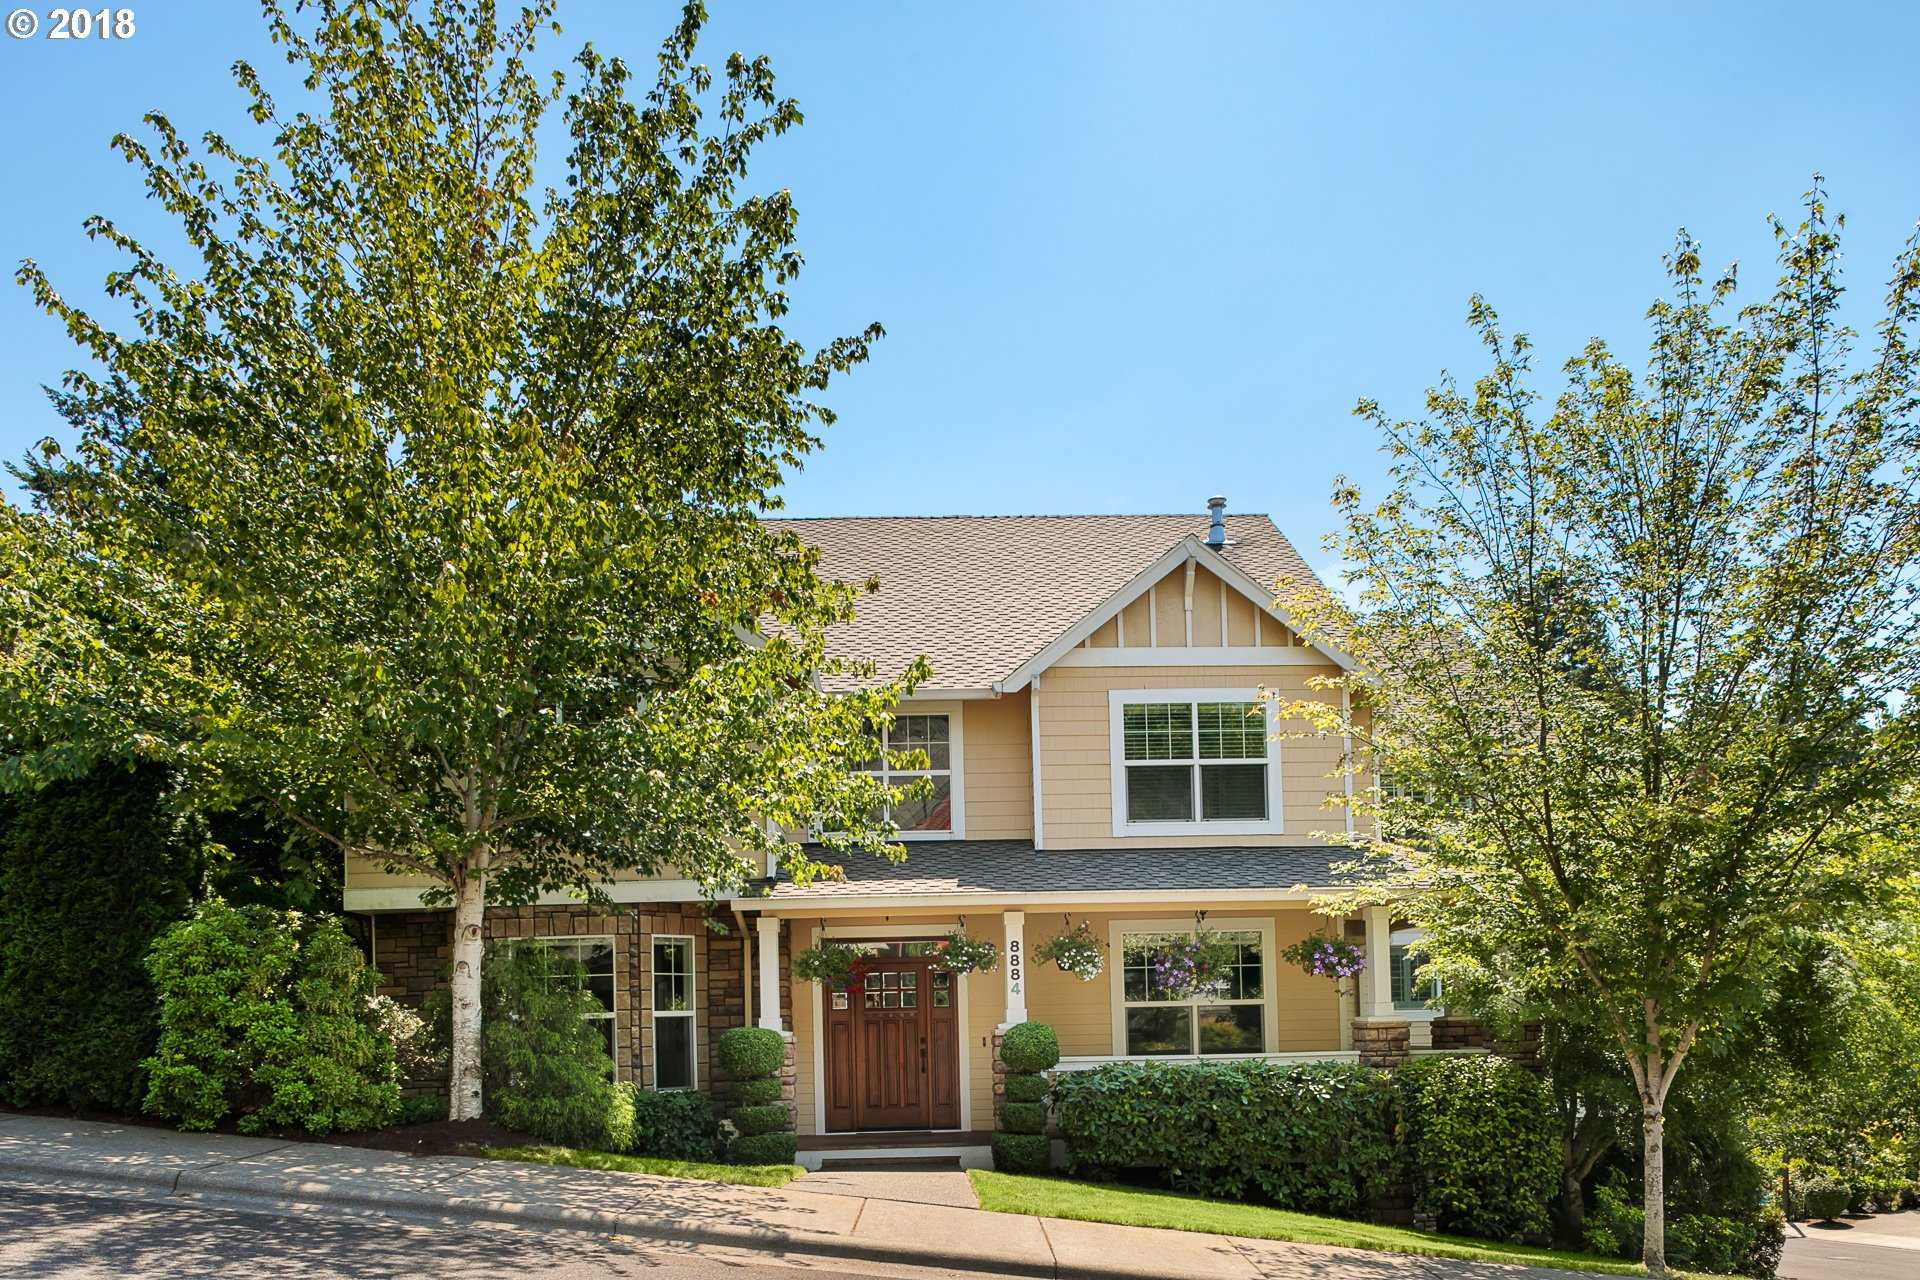 $995,000 - 5Br/4Ba -  for Sale in Nw Heights, Portland